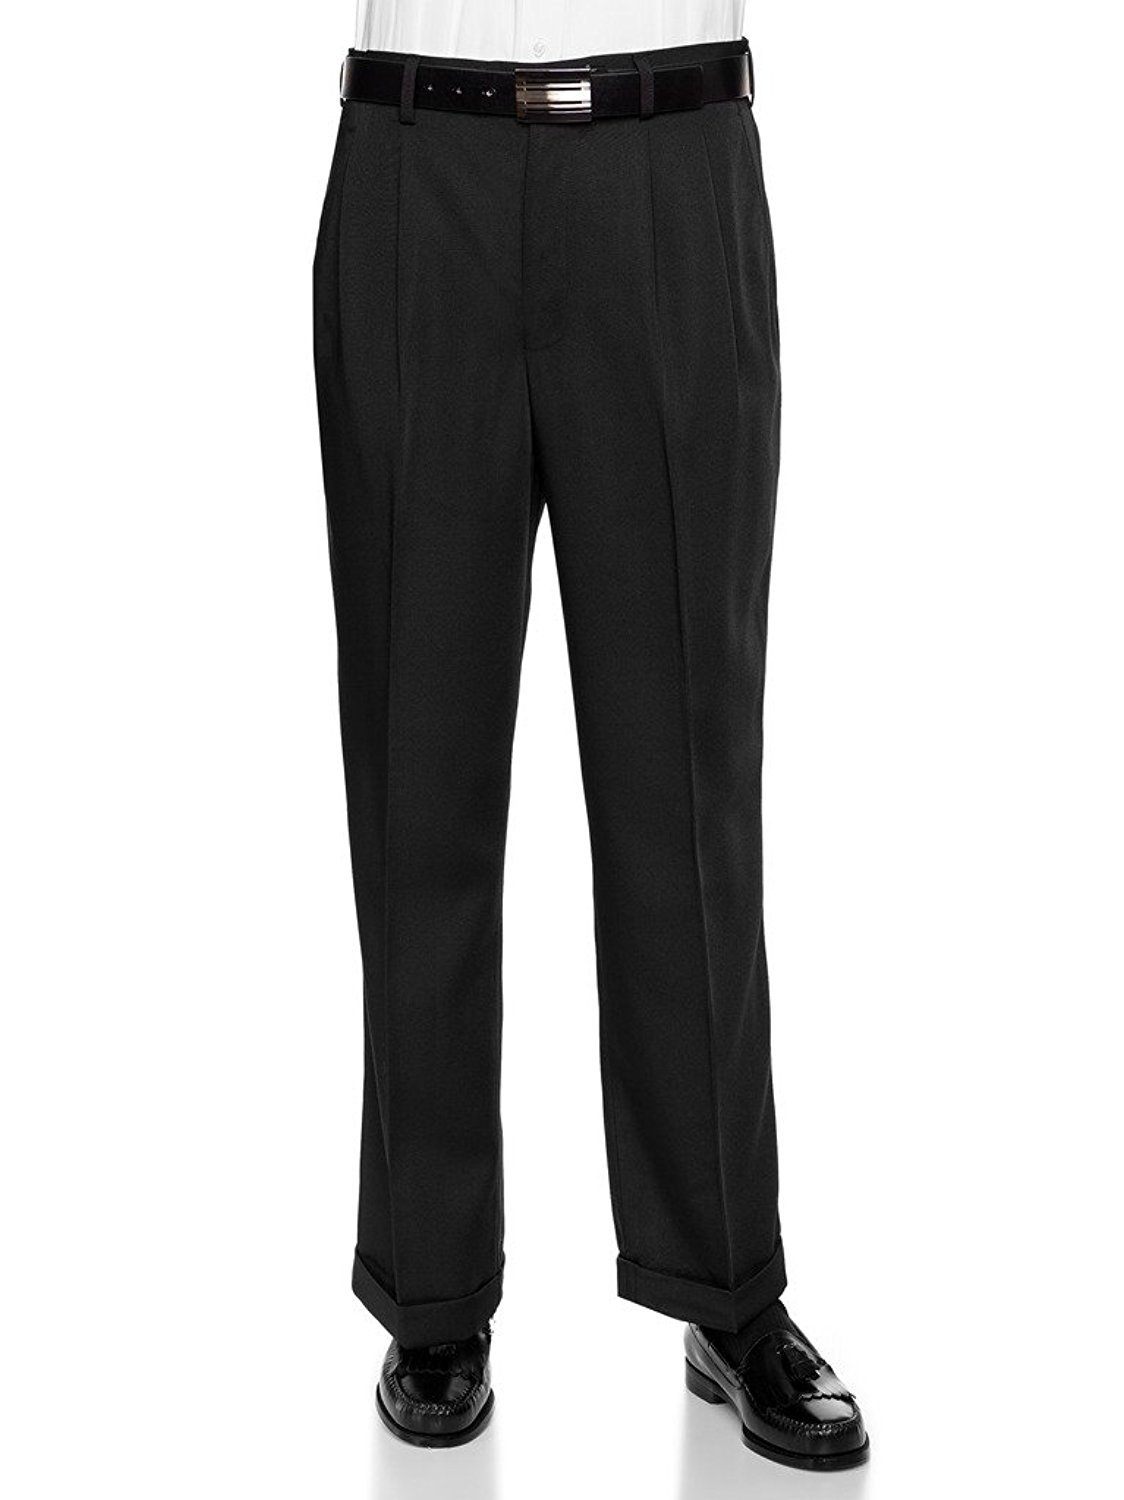 RGM Mens Work to Weekend Microfiber Performance Traditional Fit Pleated Dress Pant